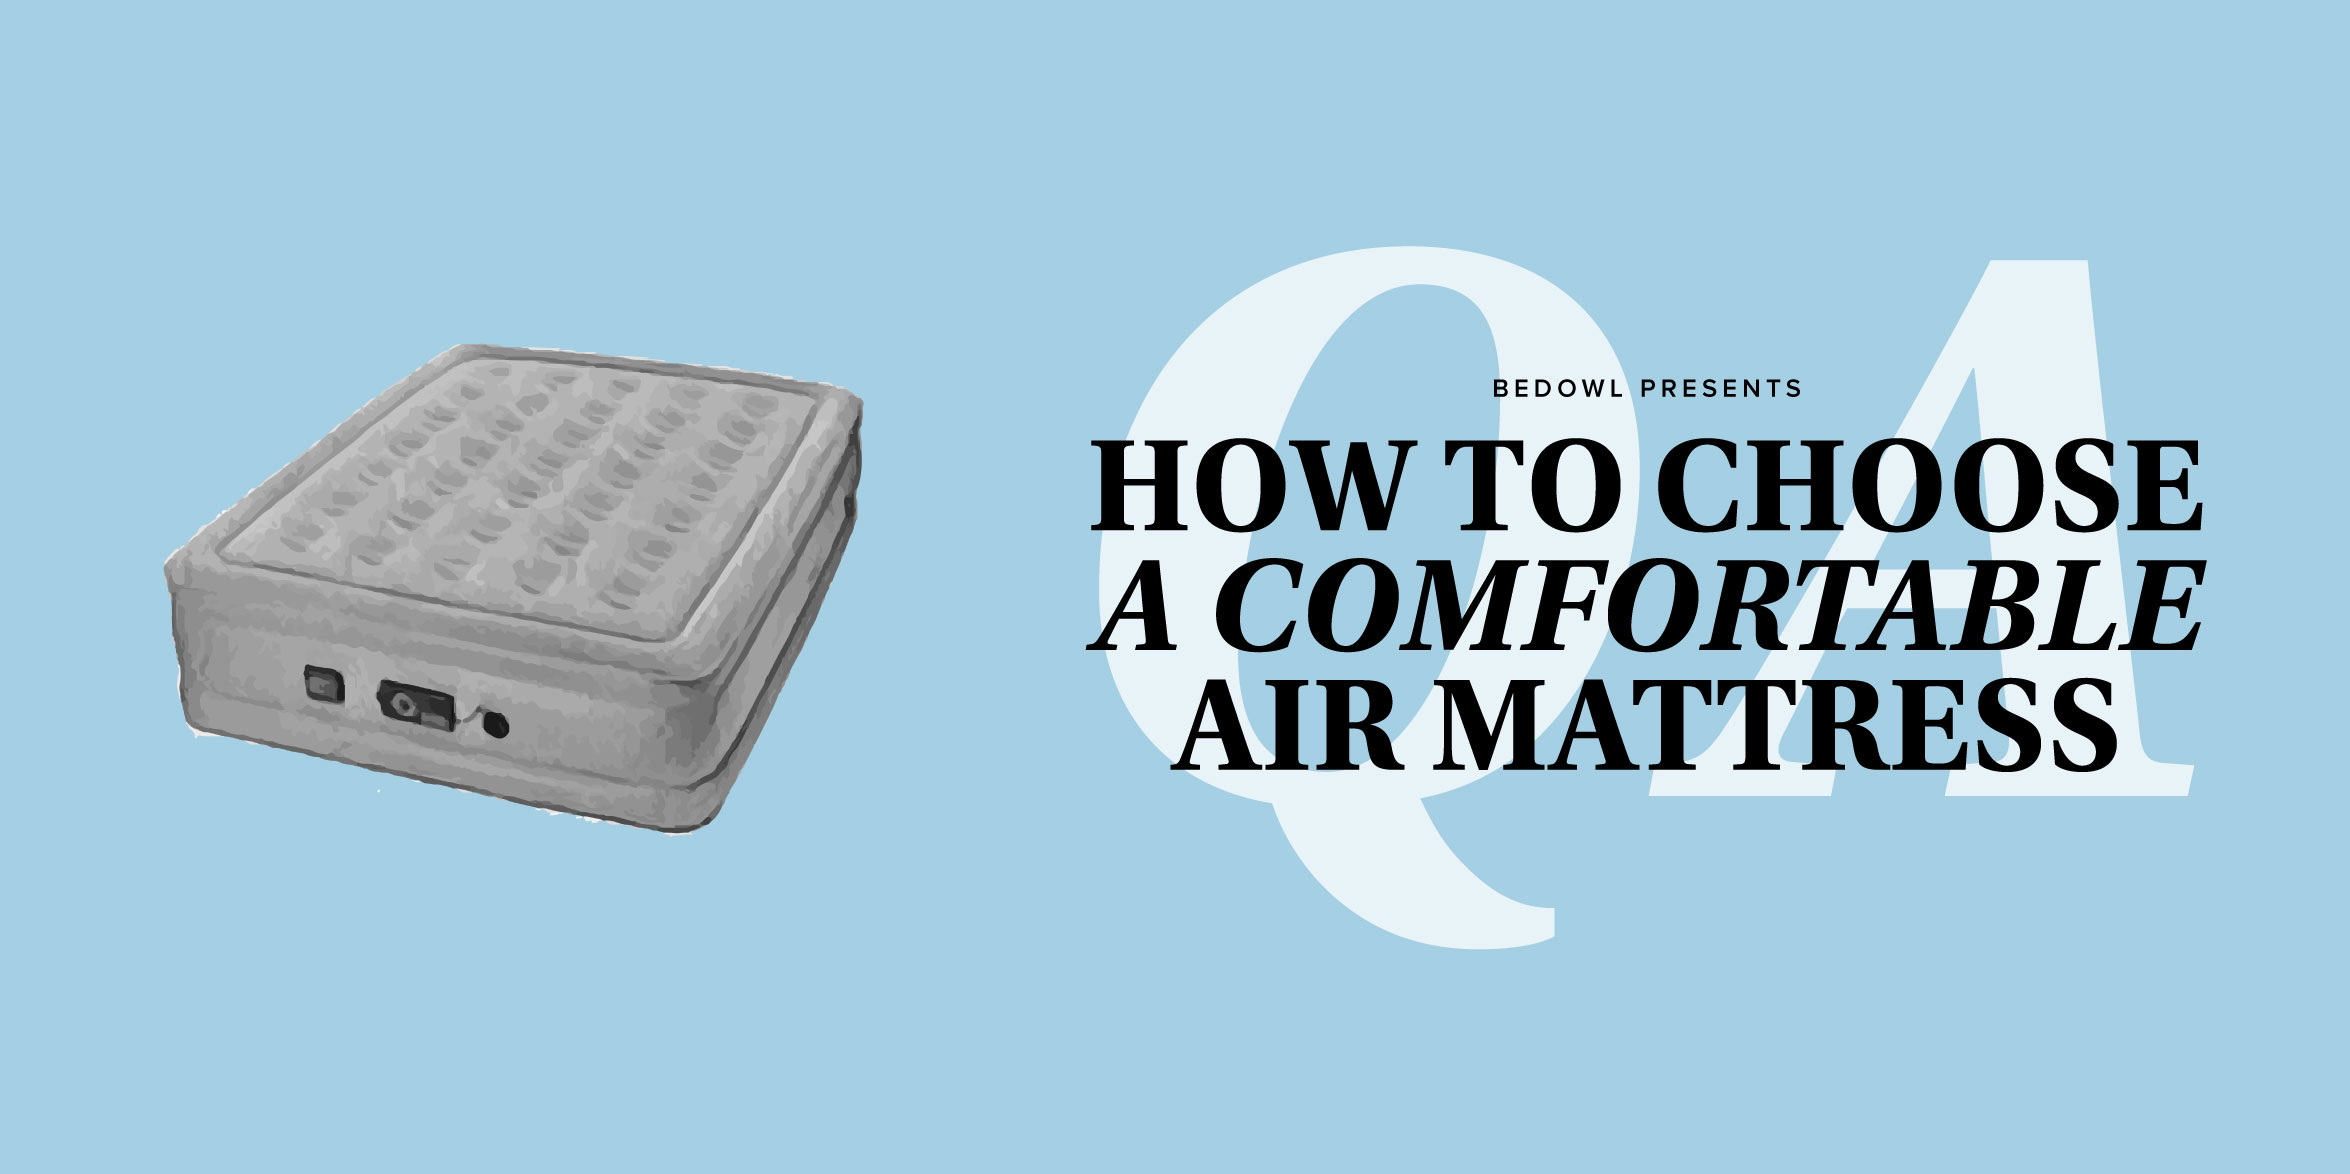 How to Choose a Comfortable Air Mattress by Bedowl